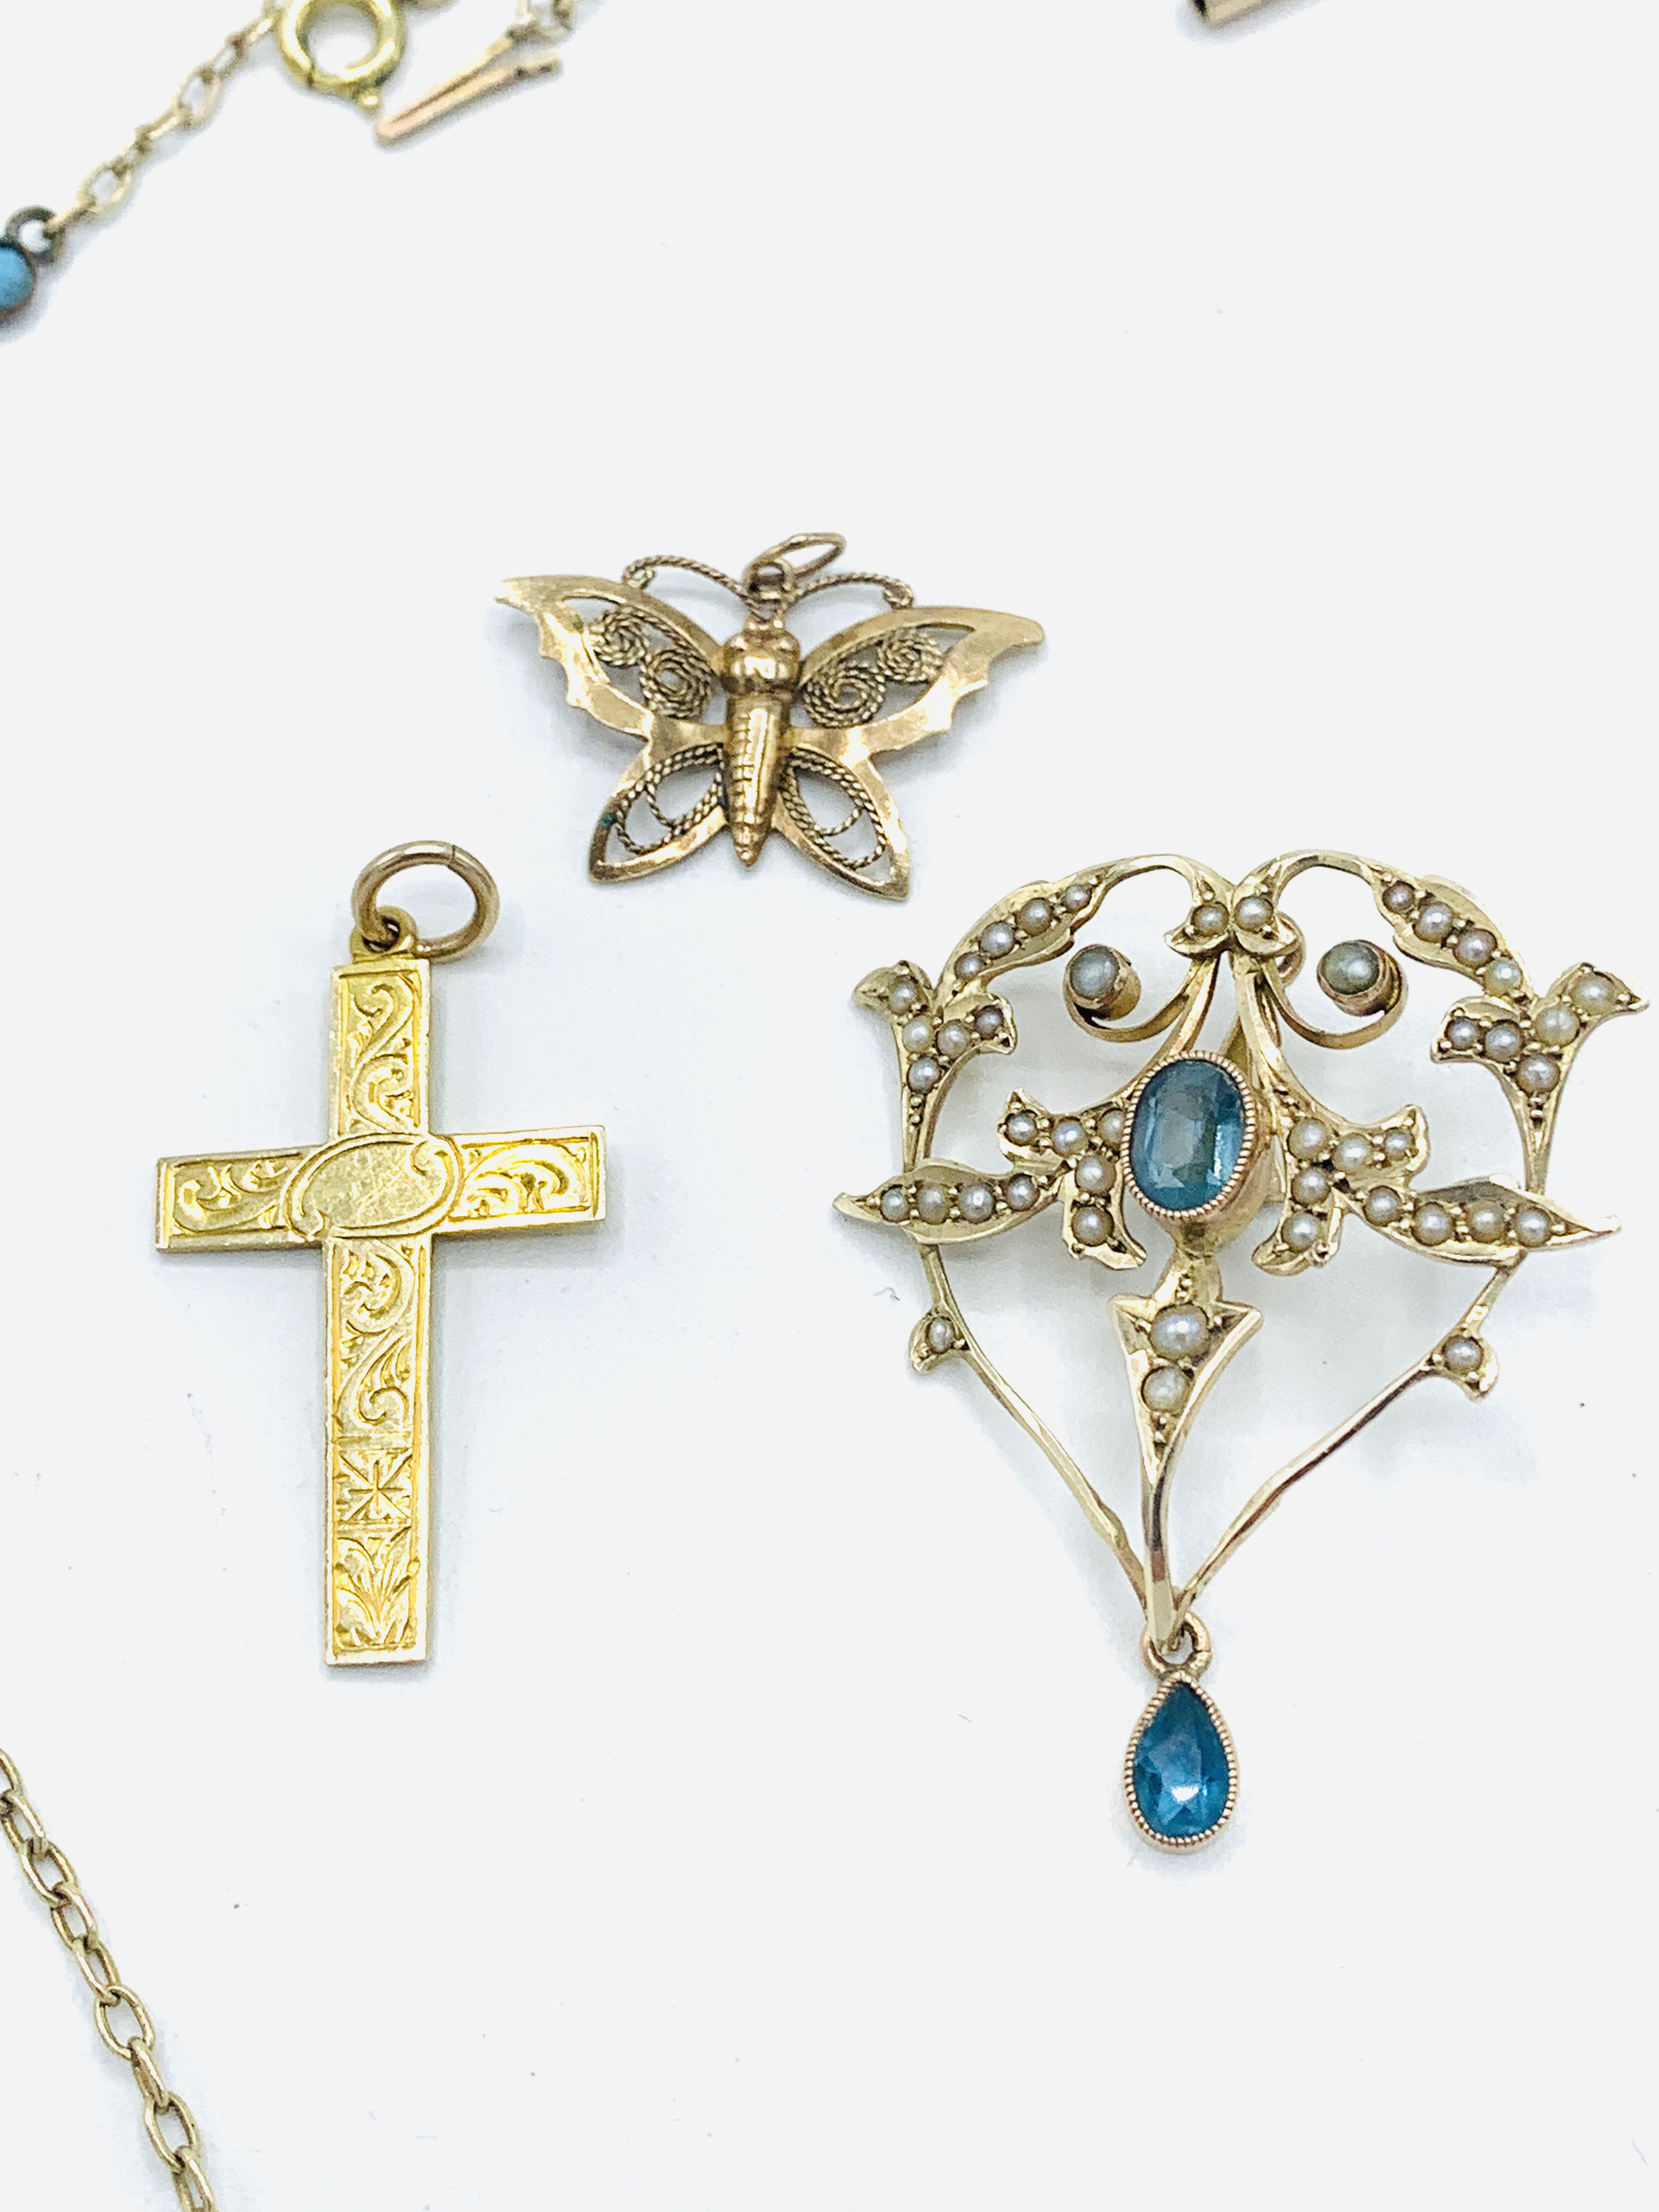 9ct gold aquamarine and seed pearl pendant; gold and turquoise chain; gold cross; butterfly brooch - Image 2 of 5